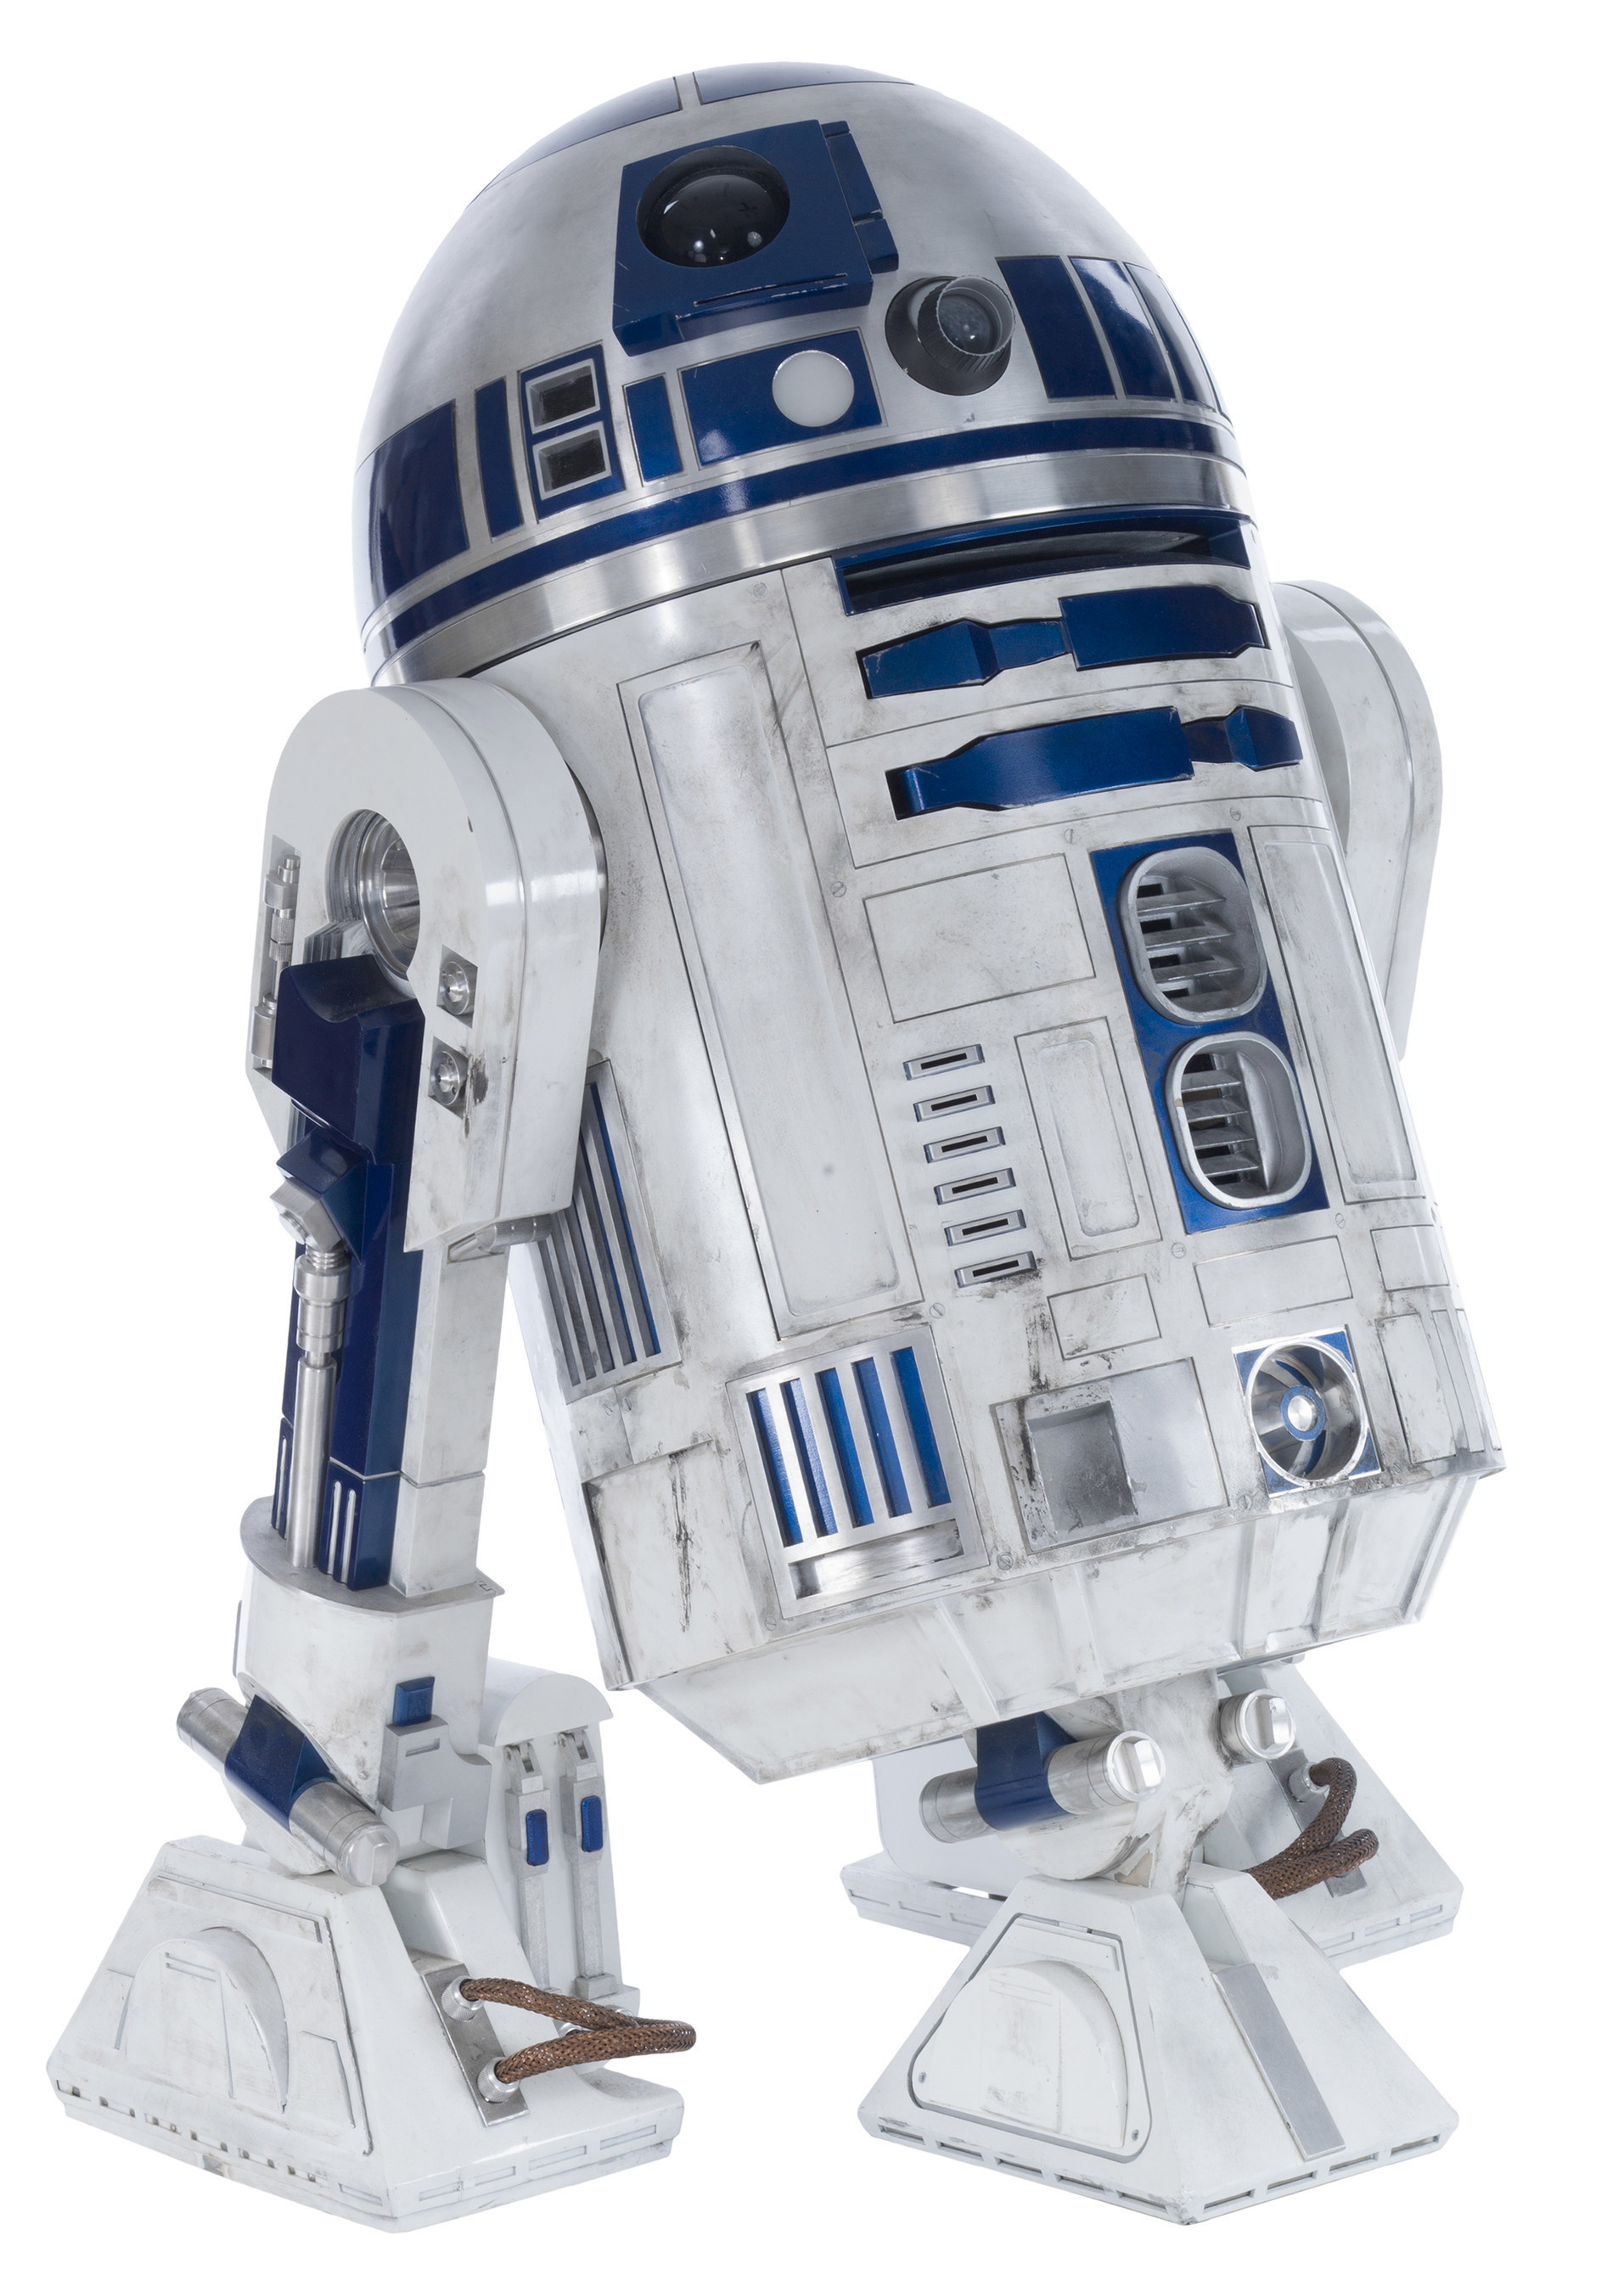 This is the droid you're looking for! R2-D2 going to auction Nov 20-21